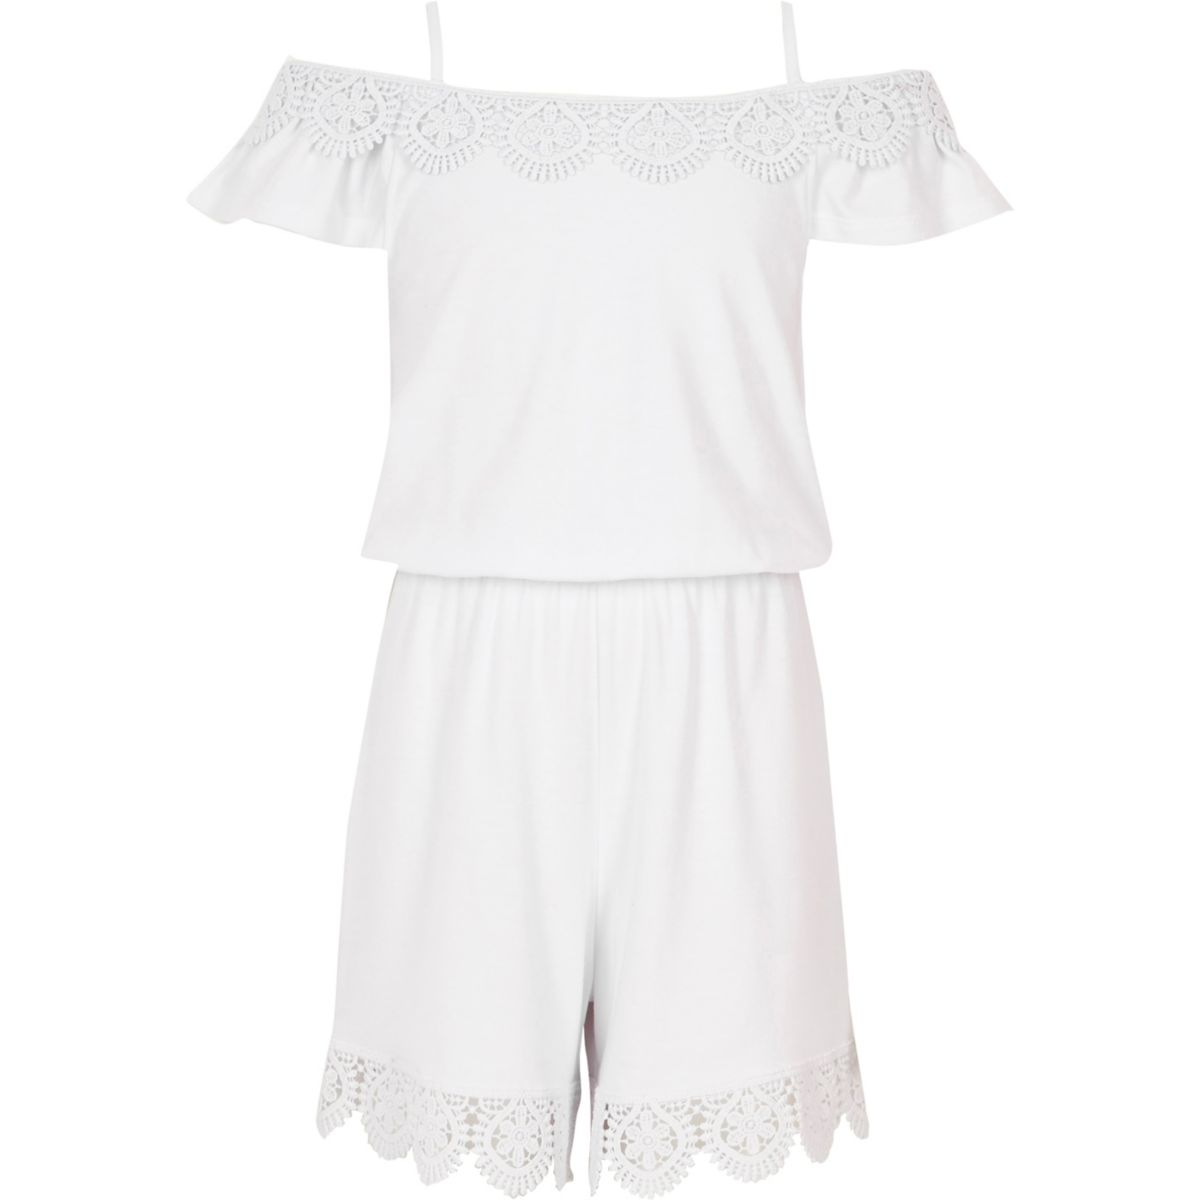 Girls white crochet cold shoulder romper